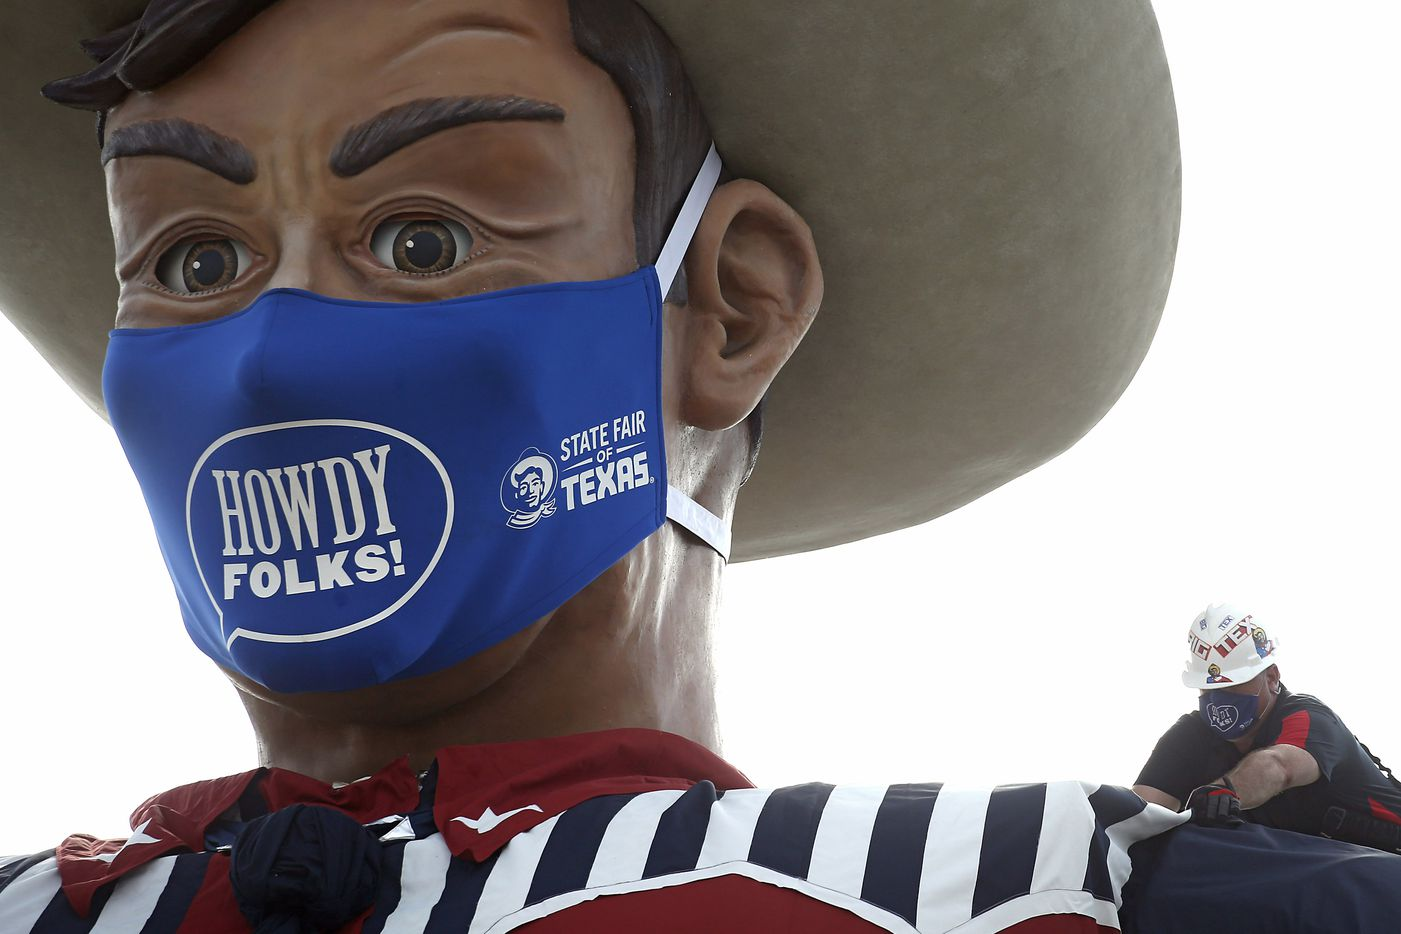 David Russ works on the shirt of Big Tex after removing a cable used to hoist him up for installed at Fair Park in Dallas on Tuesday, September 16, 2020. The mask is 84 inches by 45 inches or roughly 7 feet by 4 feet. The State Fair of Texas has been cancelled this year due to the global pandemic.